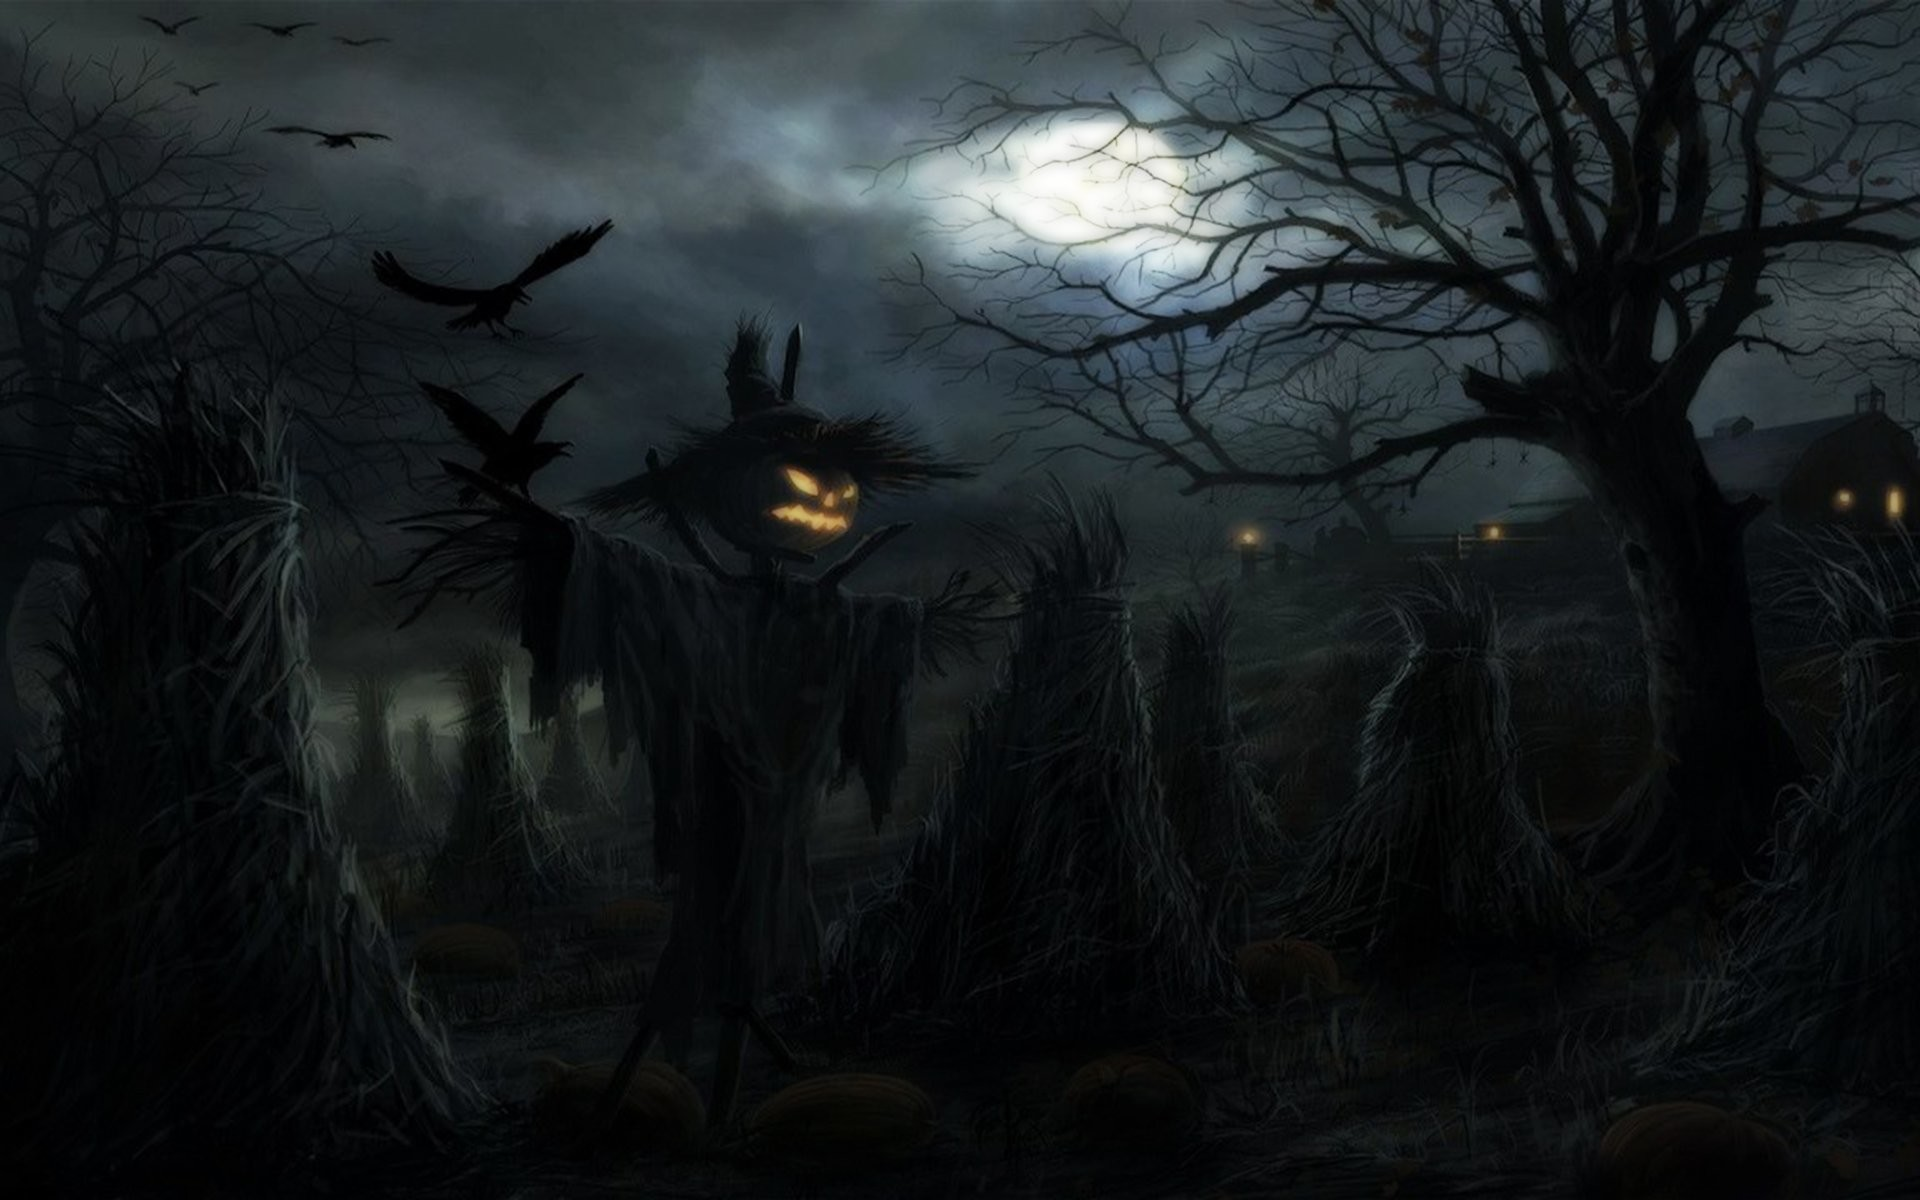 1920x1200 Scary Halloween 737663. SHARE. TAGS: Images Desktop ...